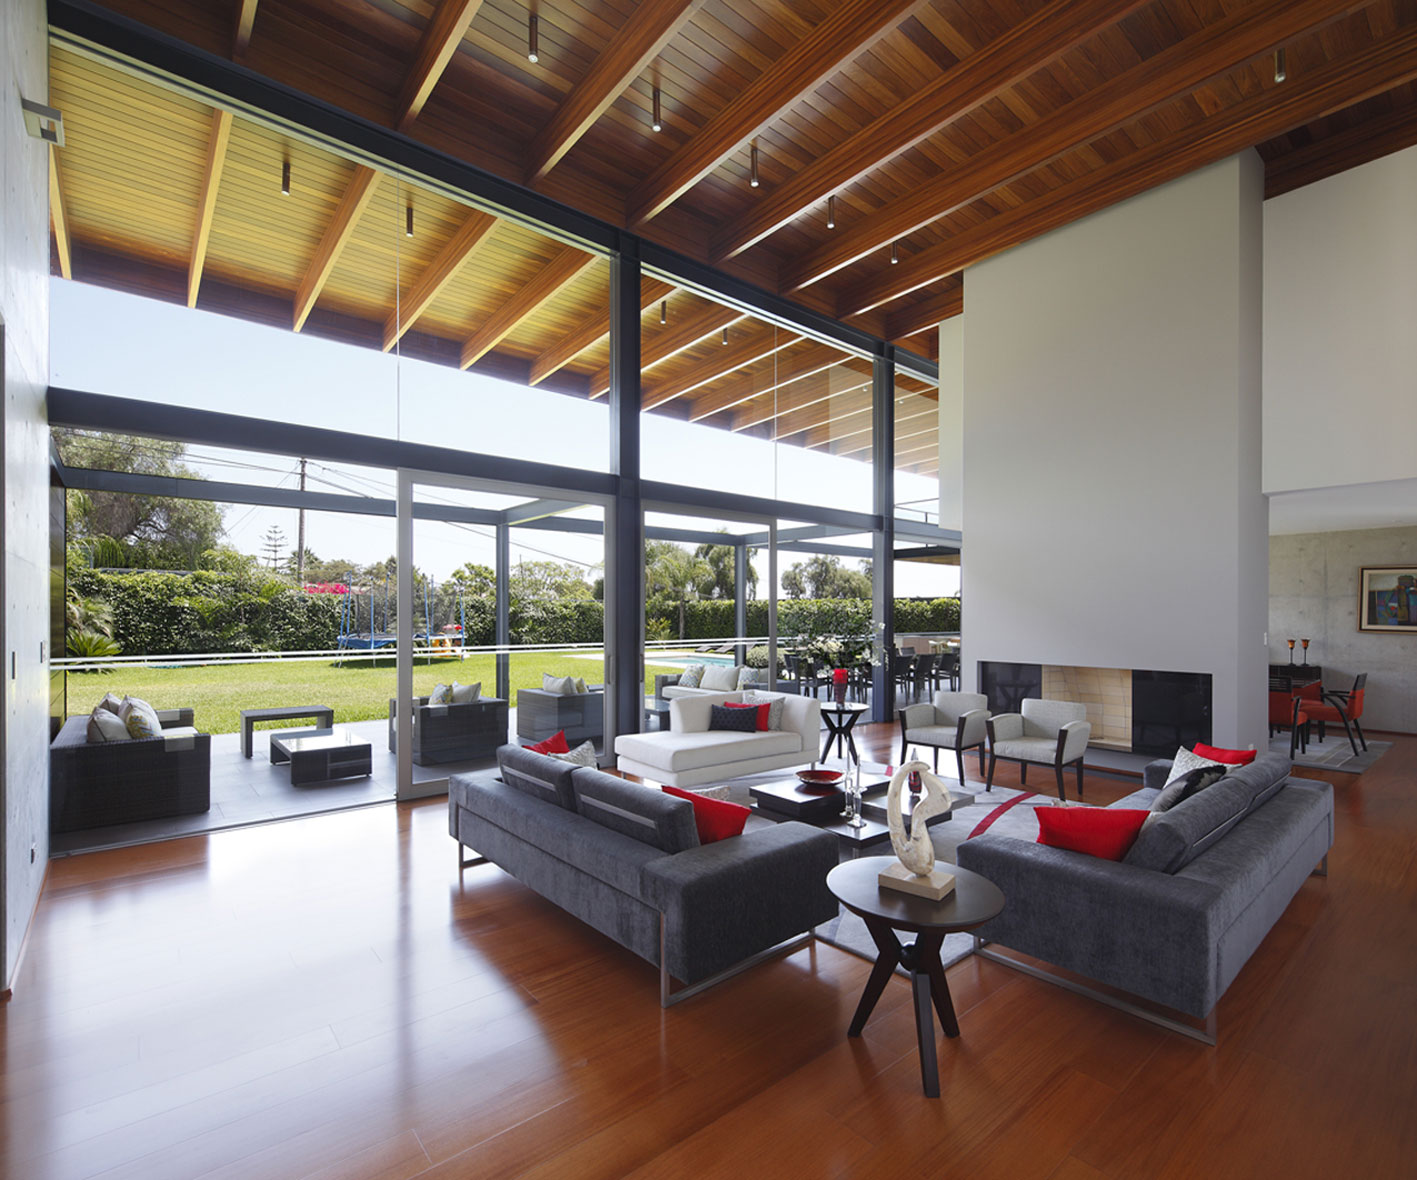 Living Room, Sofas, Fireplace, Glass Sliding Doors, Imposing Family Home in Lima, Peru